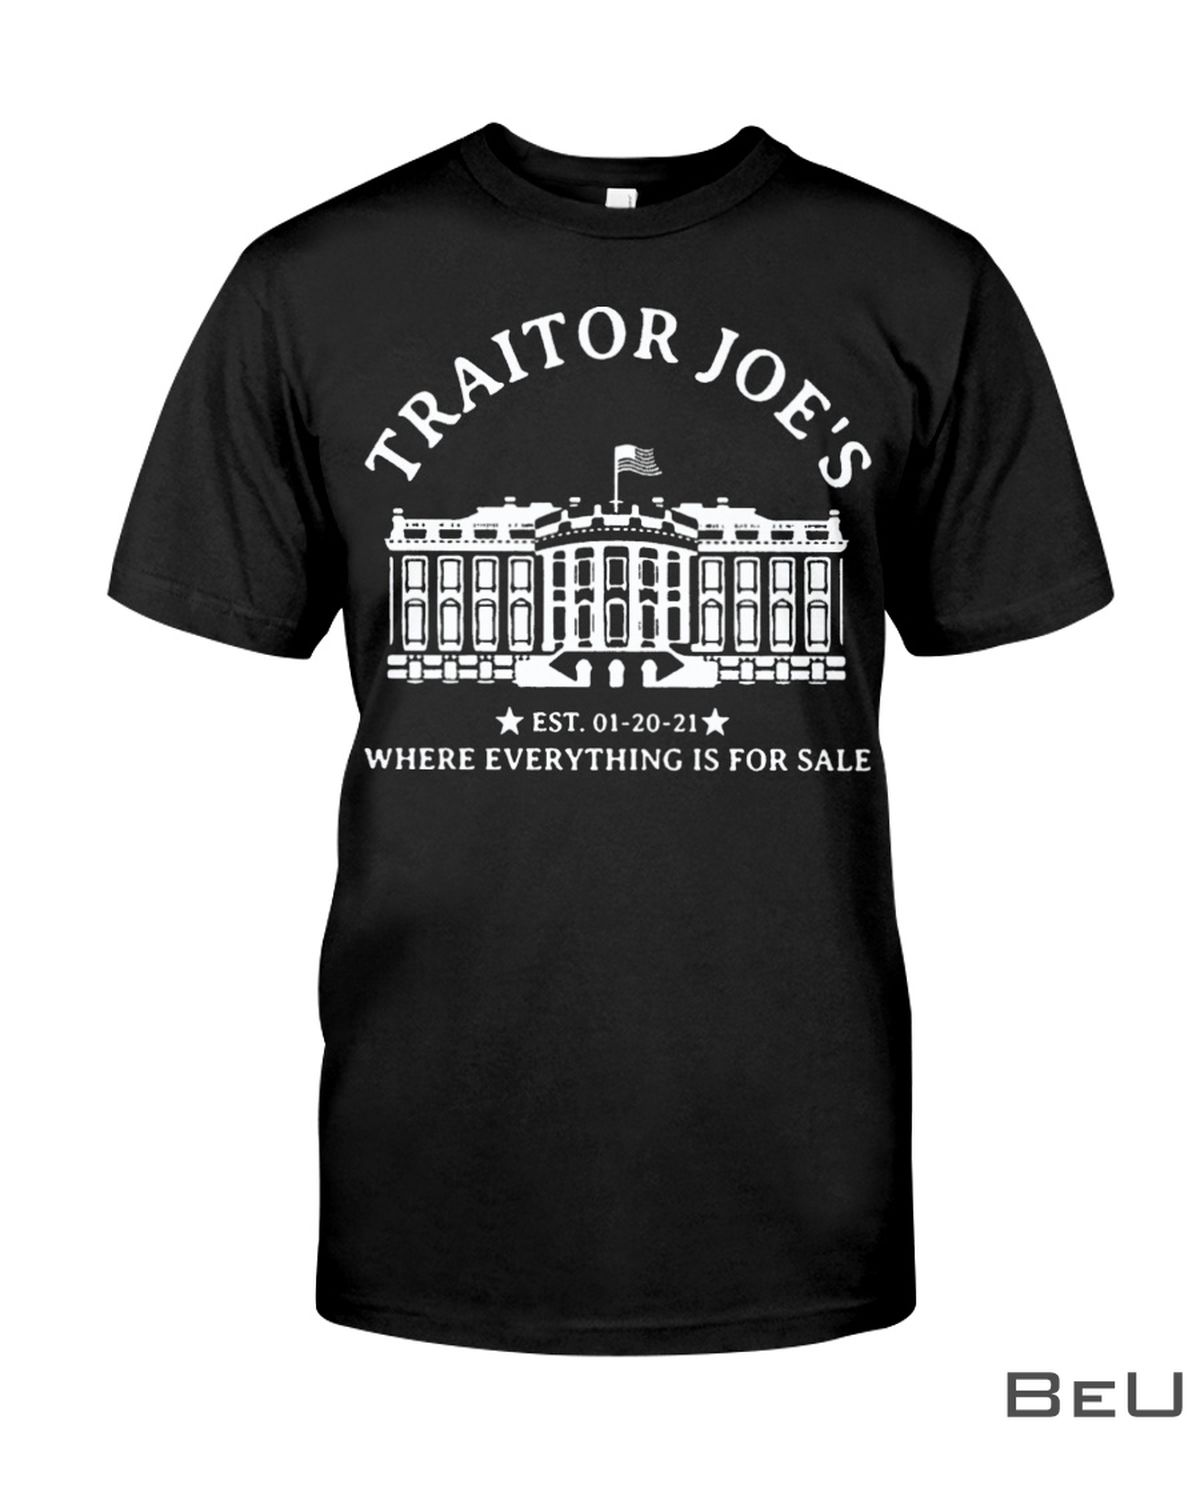 Traitor Joe's Est 01-20-21 Where Everything Is For Sale Shirt